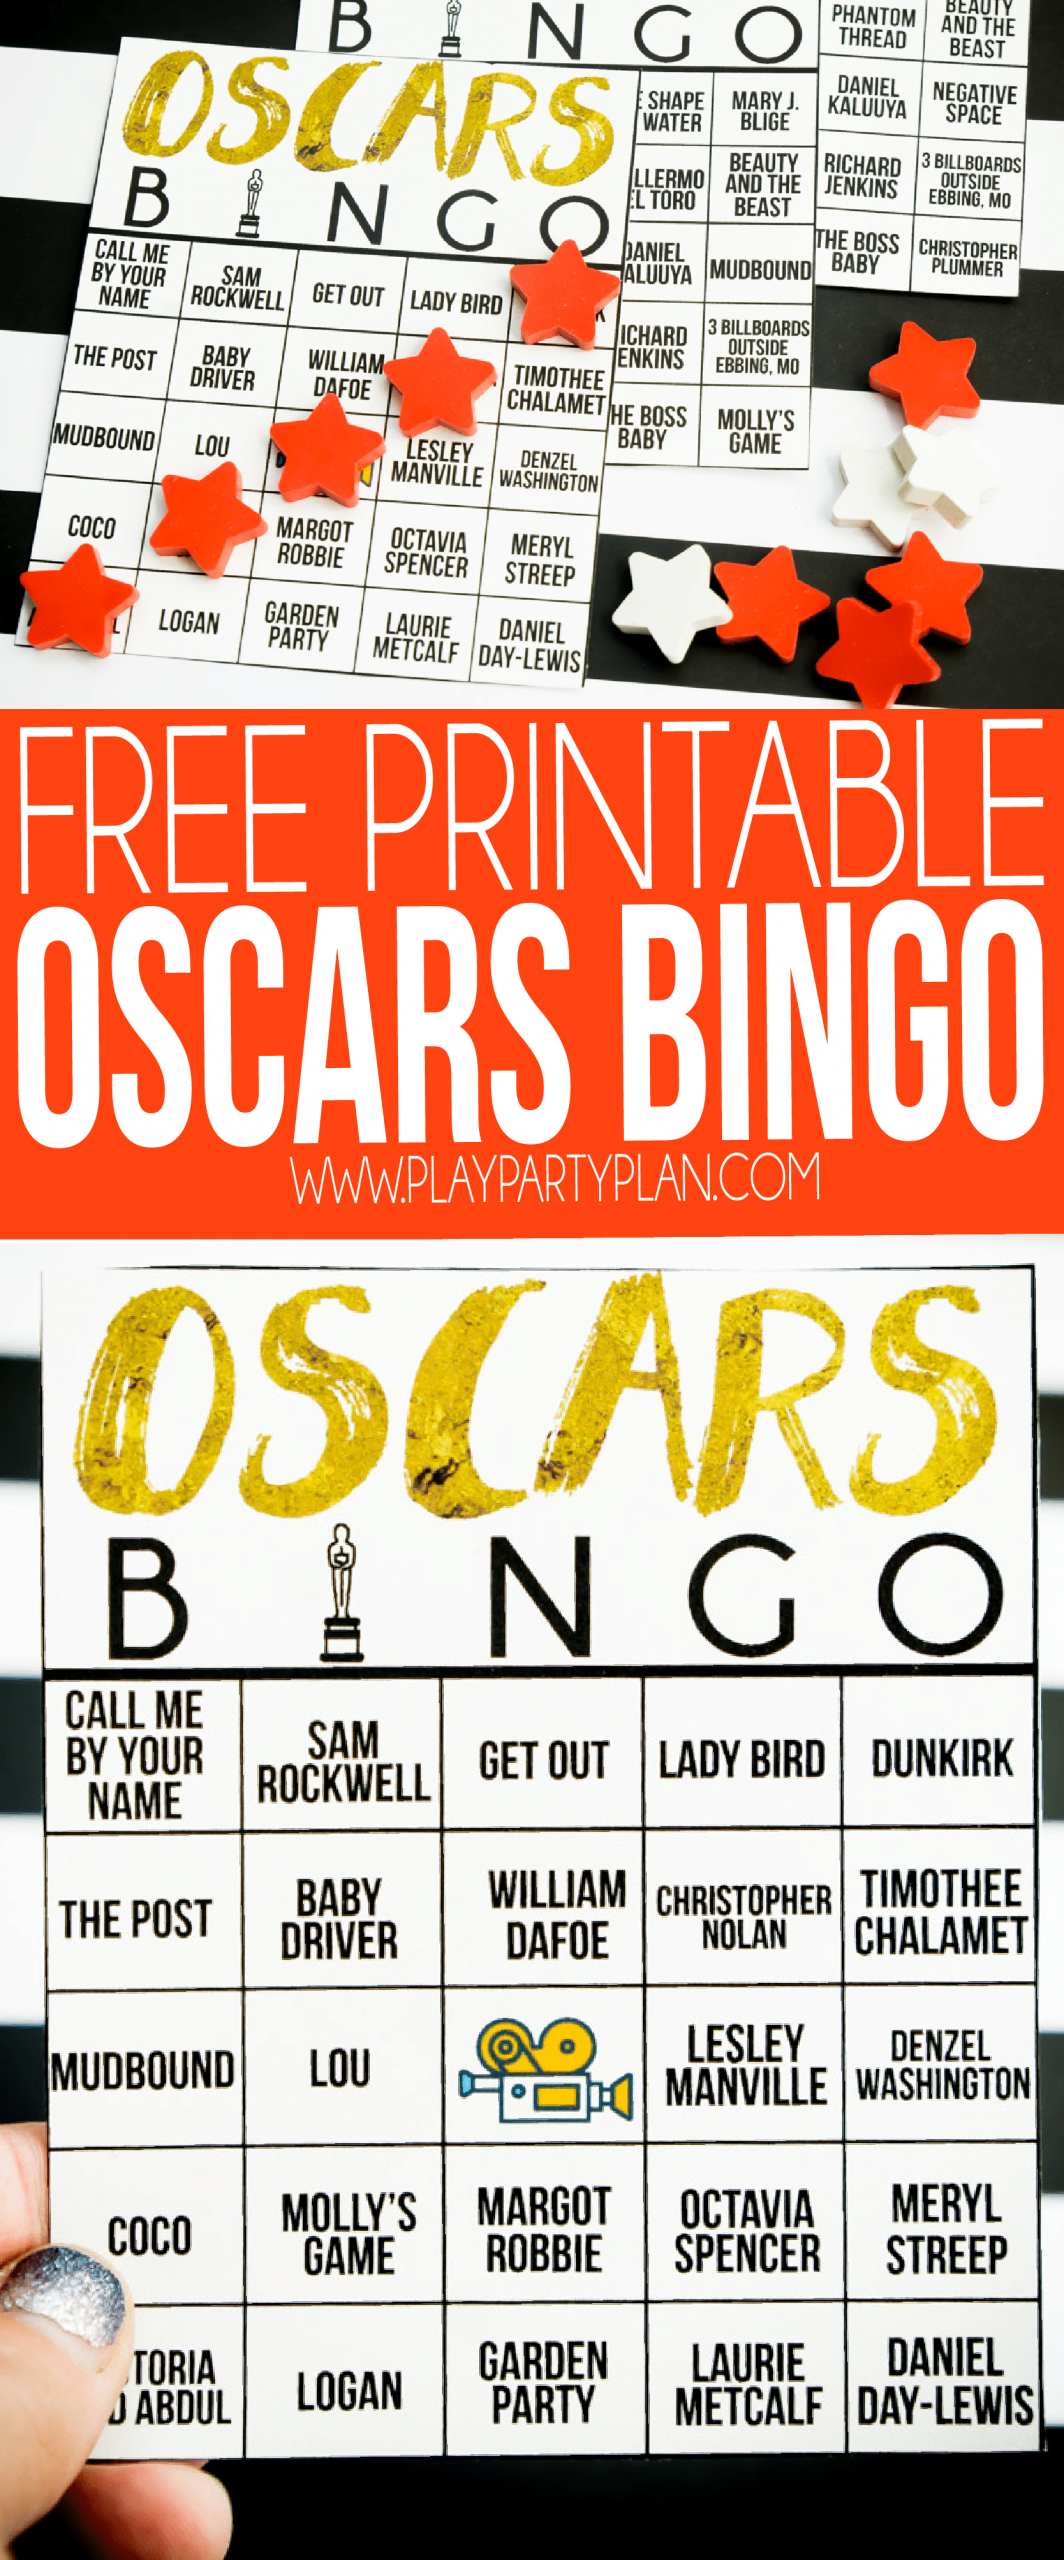 Free Printable 2020 Oscars Bingo Cards - Play Party Plan